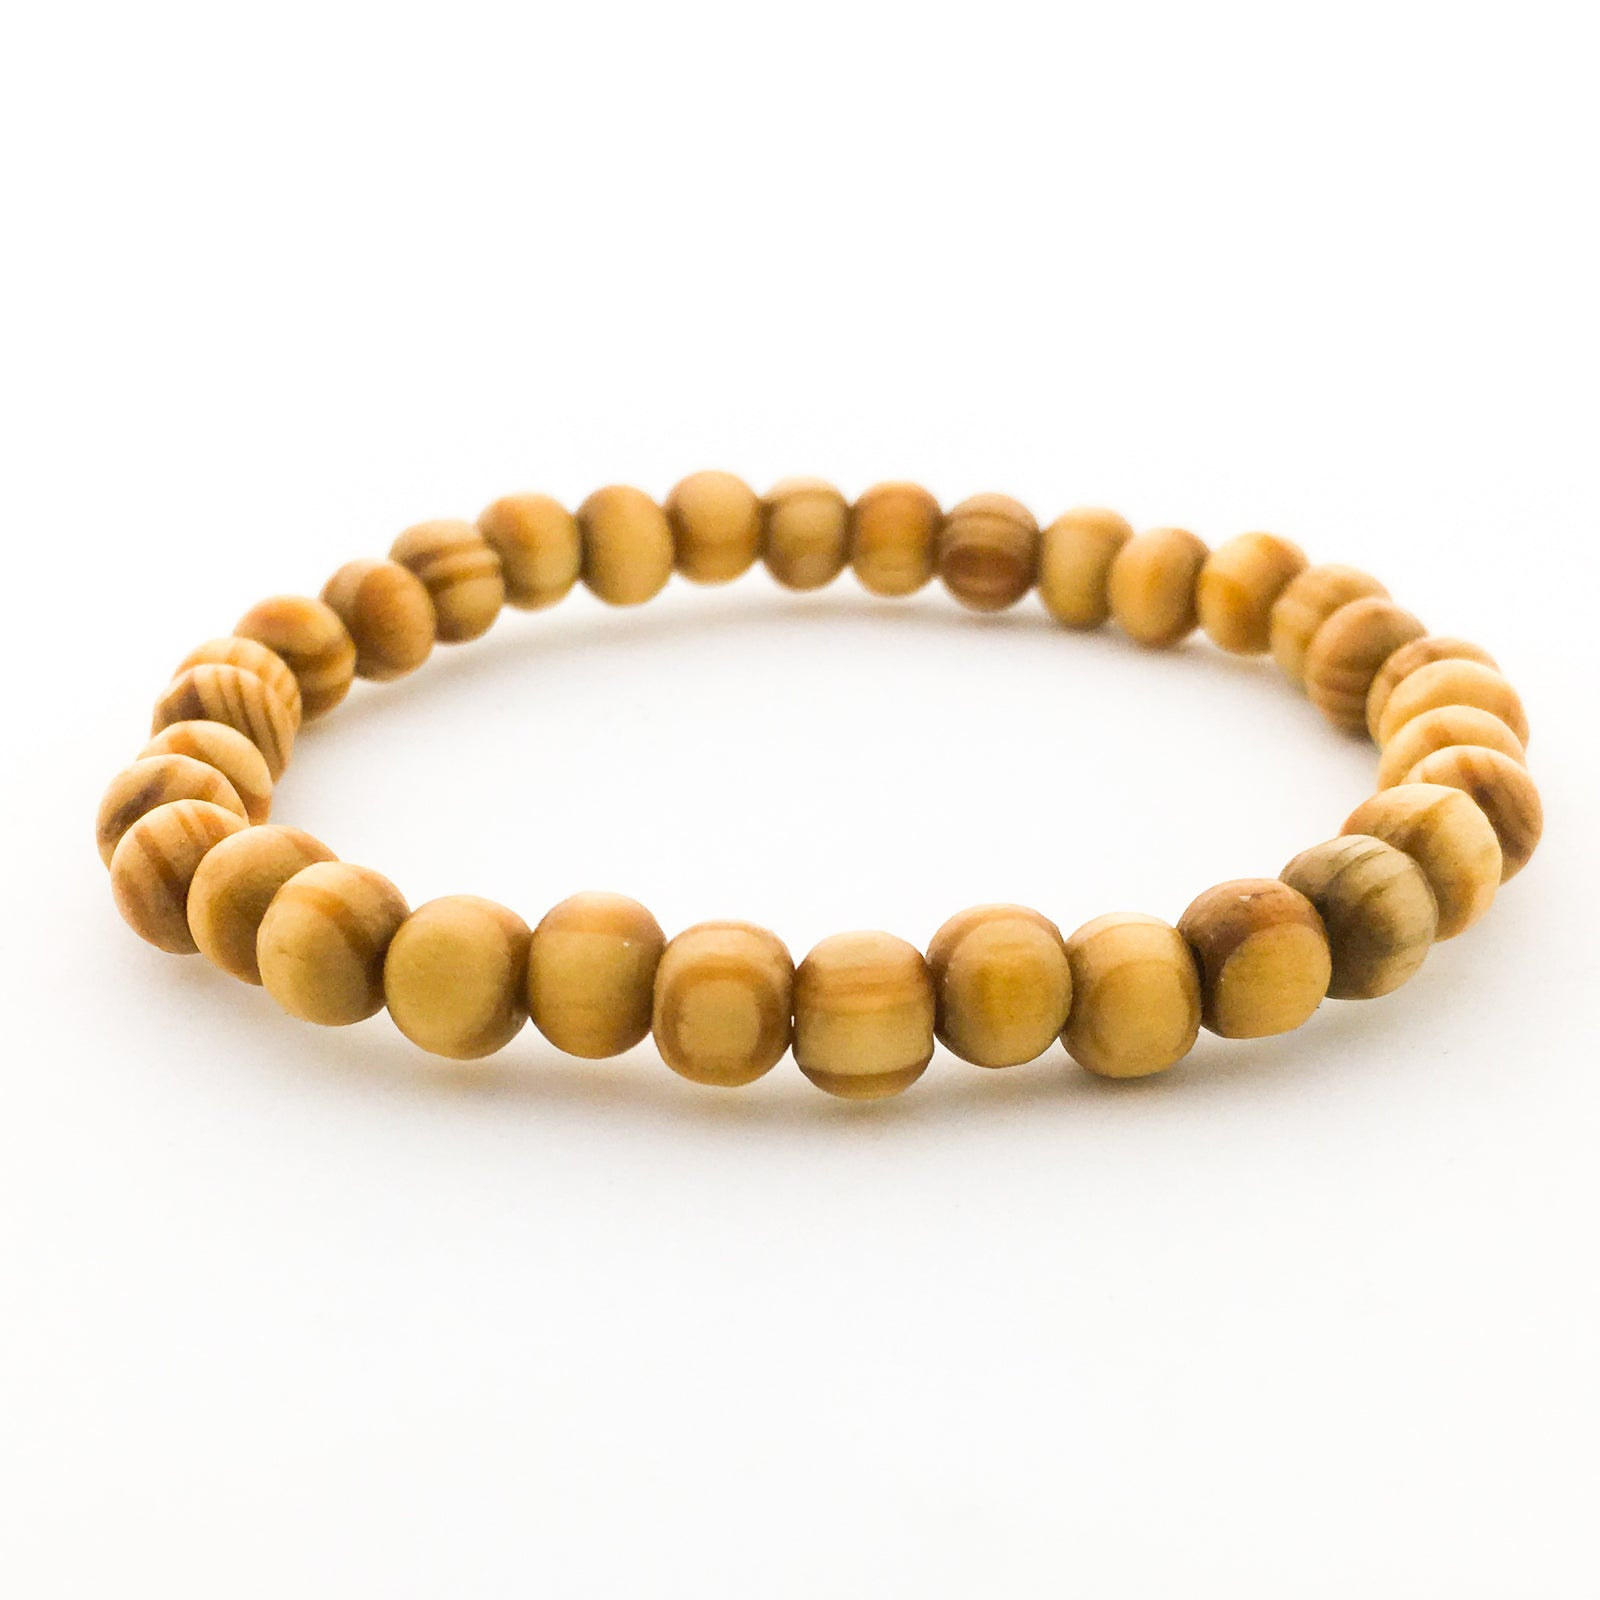 SOLID WOOD BRACELETS | SIZE OPTIONS